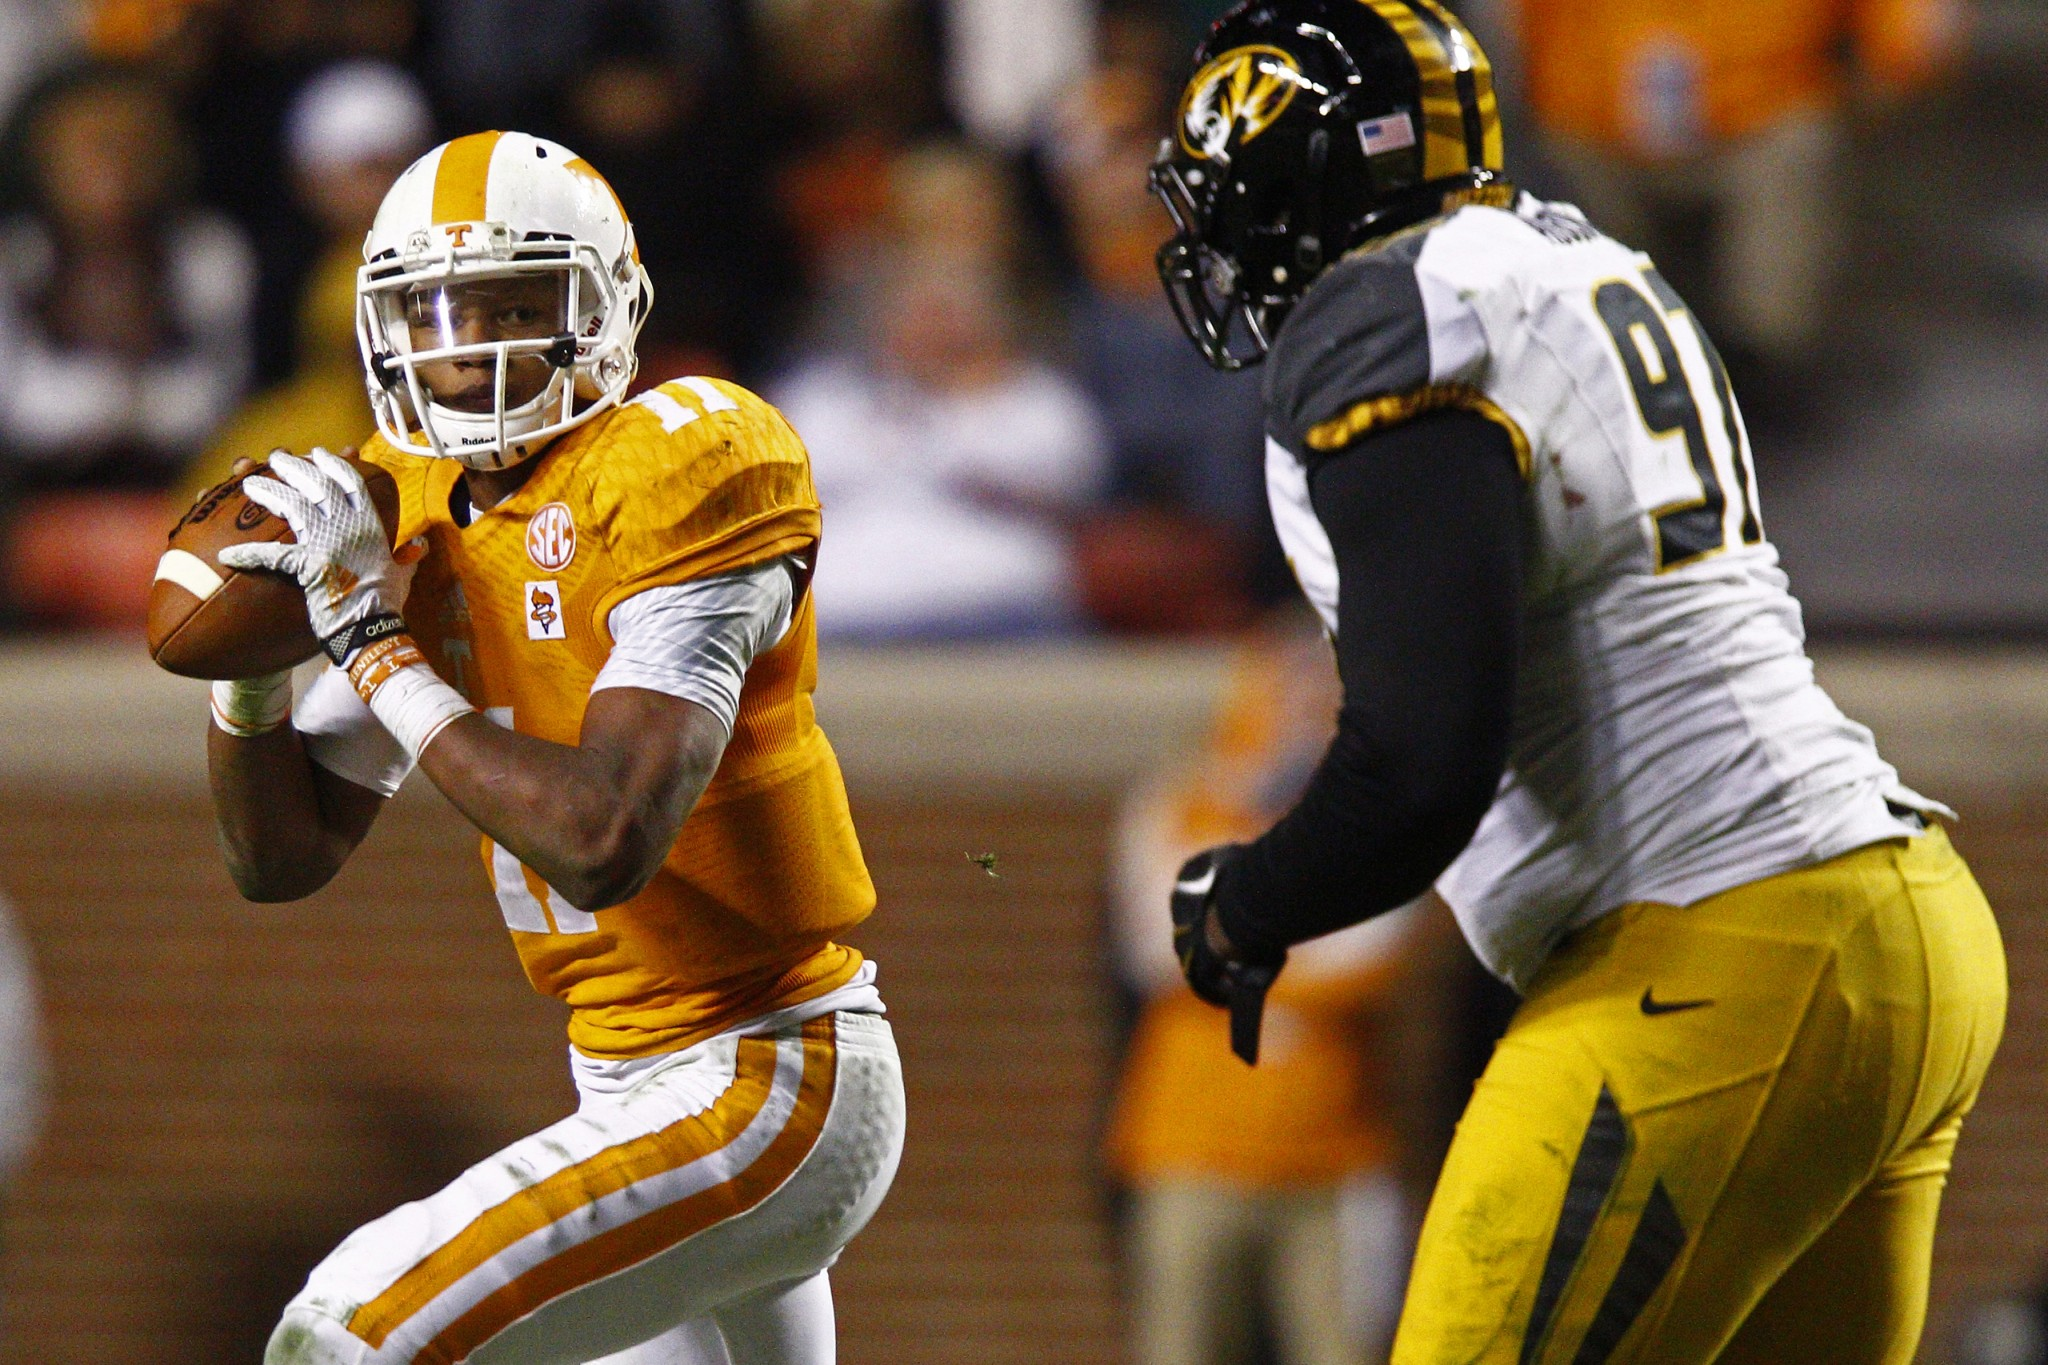 Tennessee quarterback Joshua Dobbs (11) looks for a receiver as he's pressured by Missouri defensive lineman Josh Augusta (97) in the second half of an NCAA college football game Saturday, Nov. 22, 2014 in Knoxville, Tenn. Missouri won 29-21. (AP Photo/Wade Payne)